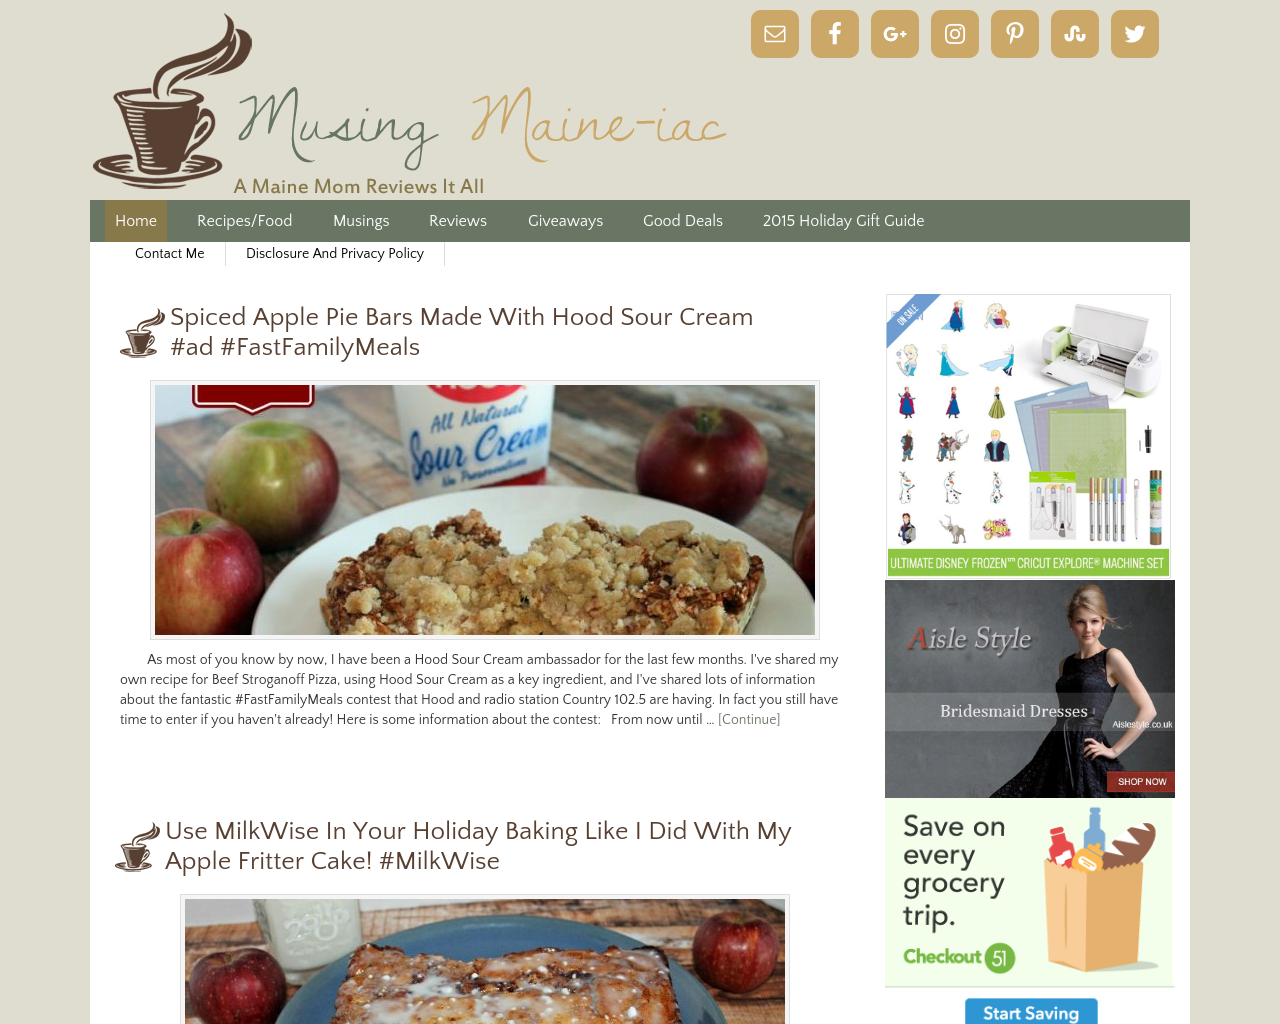 Musing-Maine-iac-A-Maine-Mom-Reviews-It-All-Advertising-Reviews-Pricing